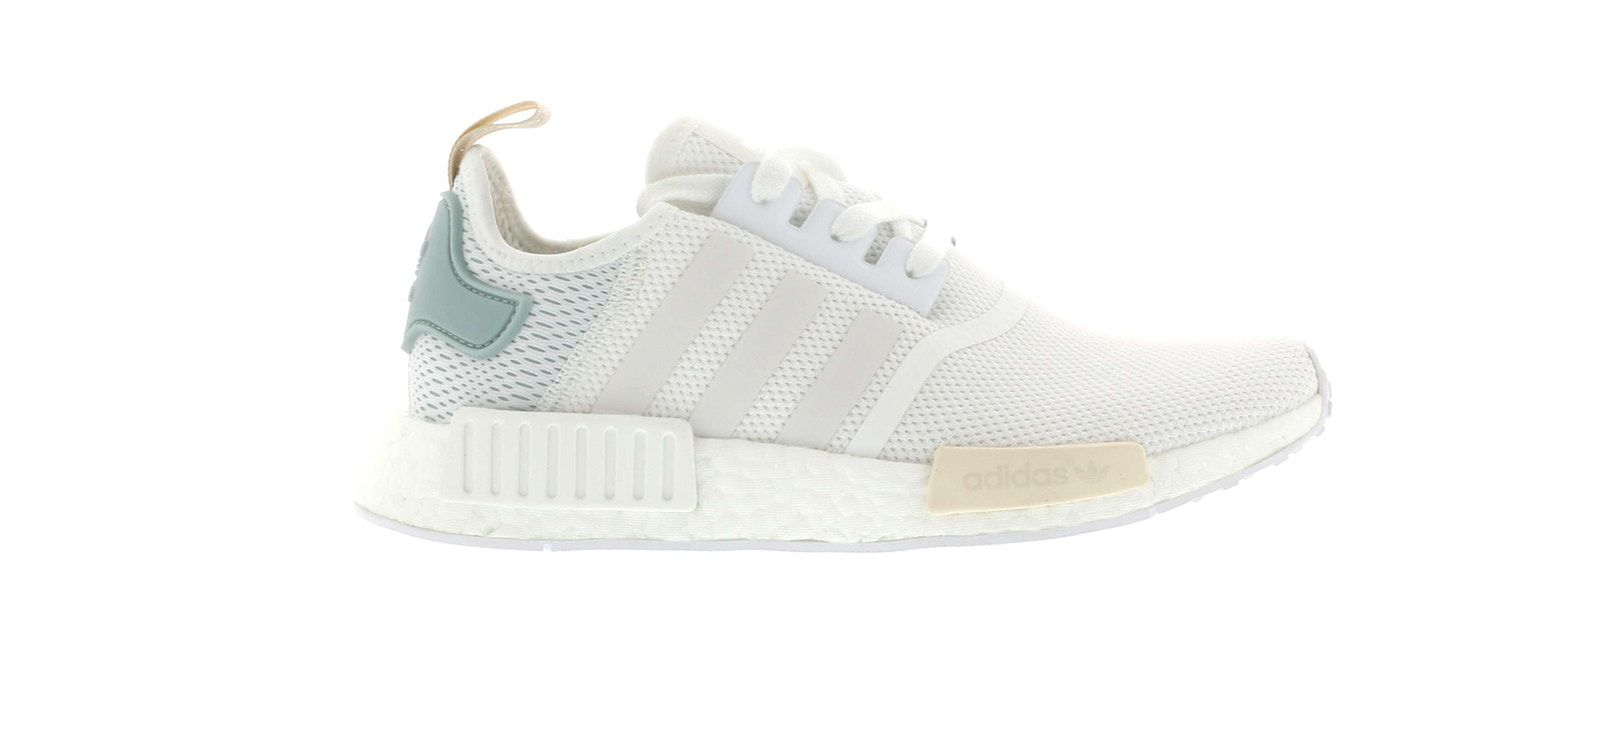 4de30f0ff7b33 ... best price check out the adidas nmd r1 tactile greenw available on  stockx 3a5b7 a1bf2